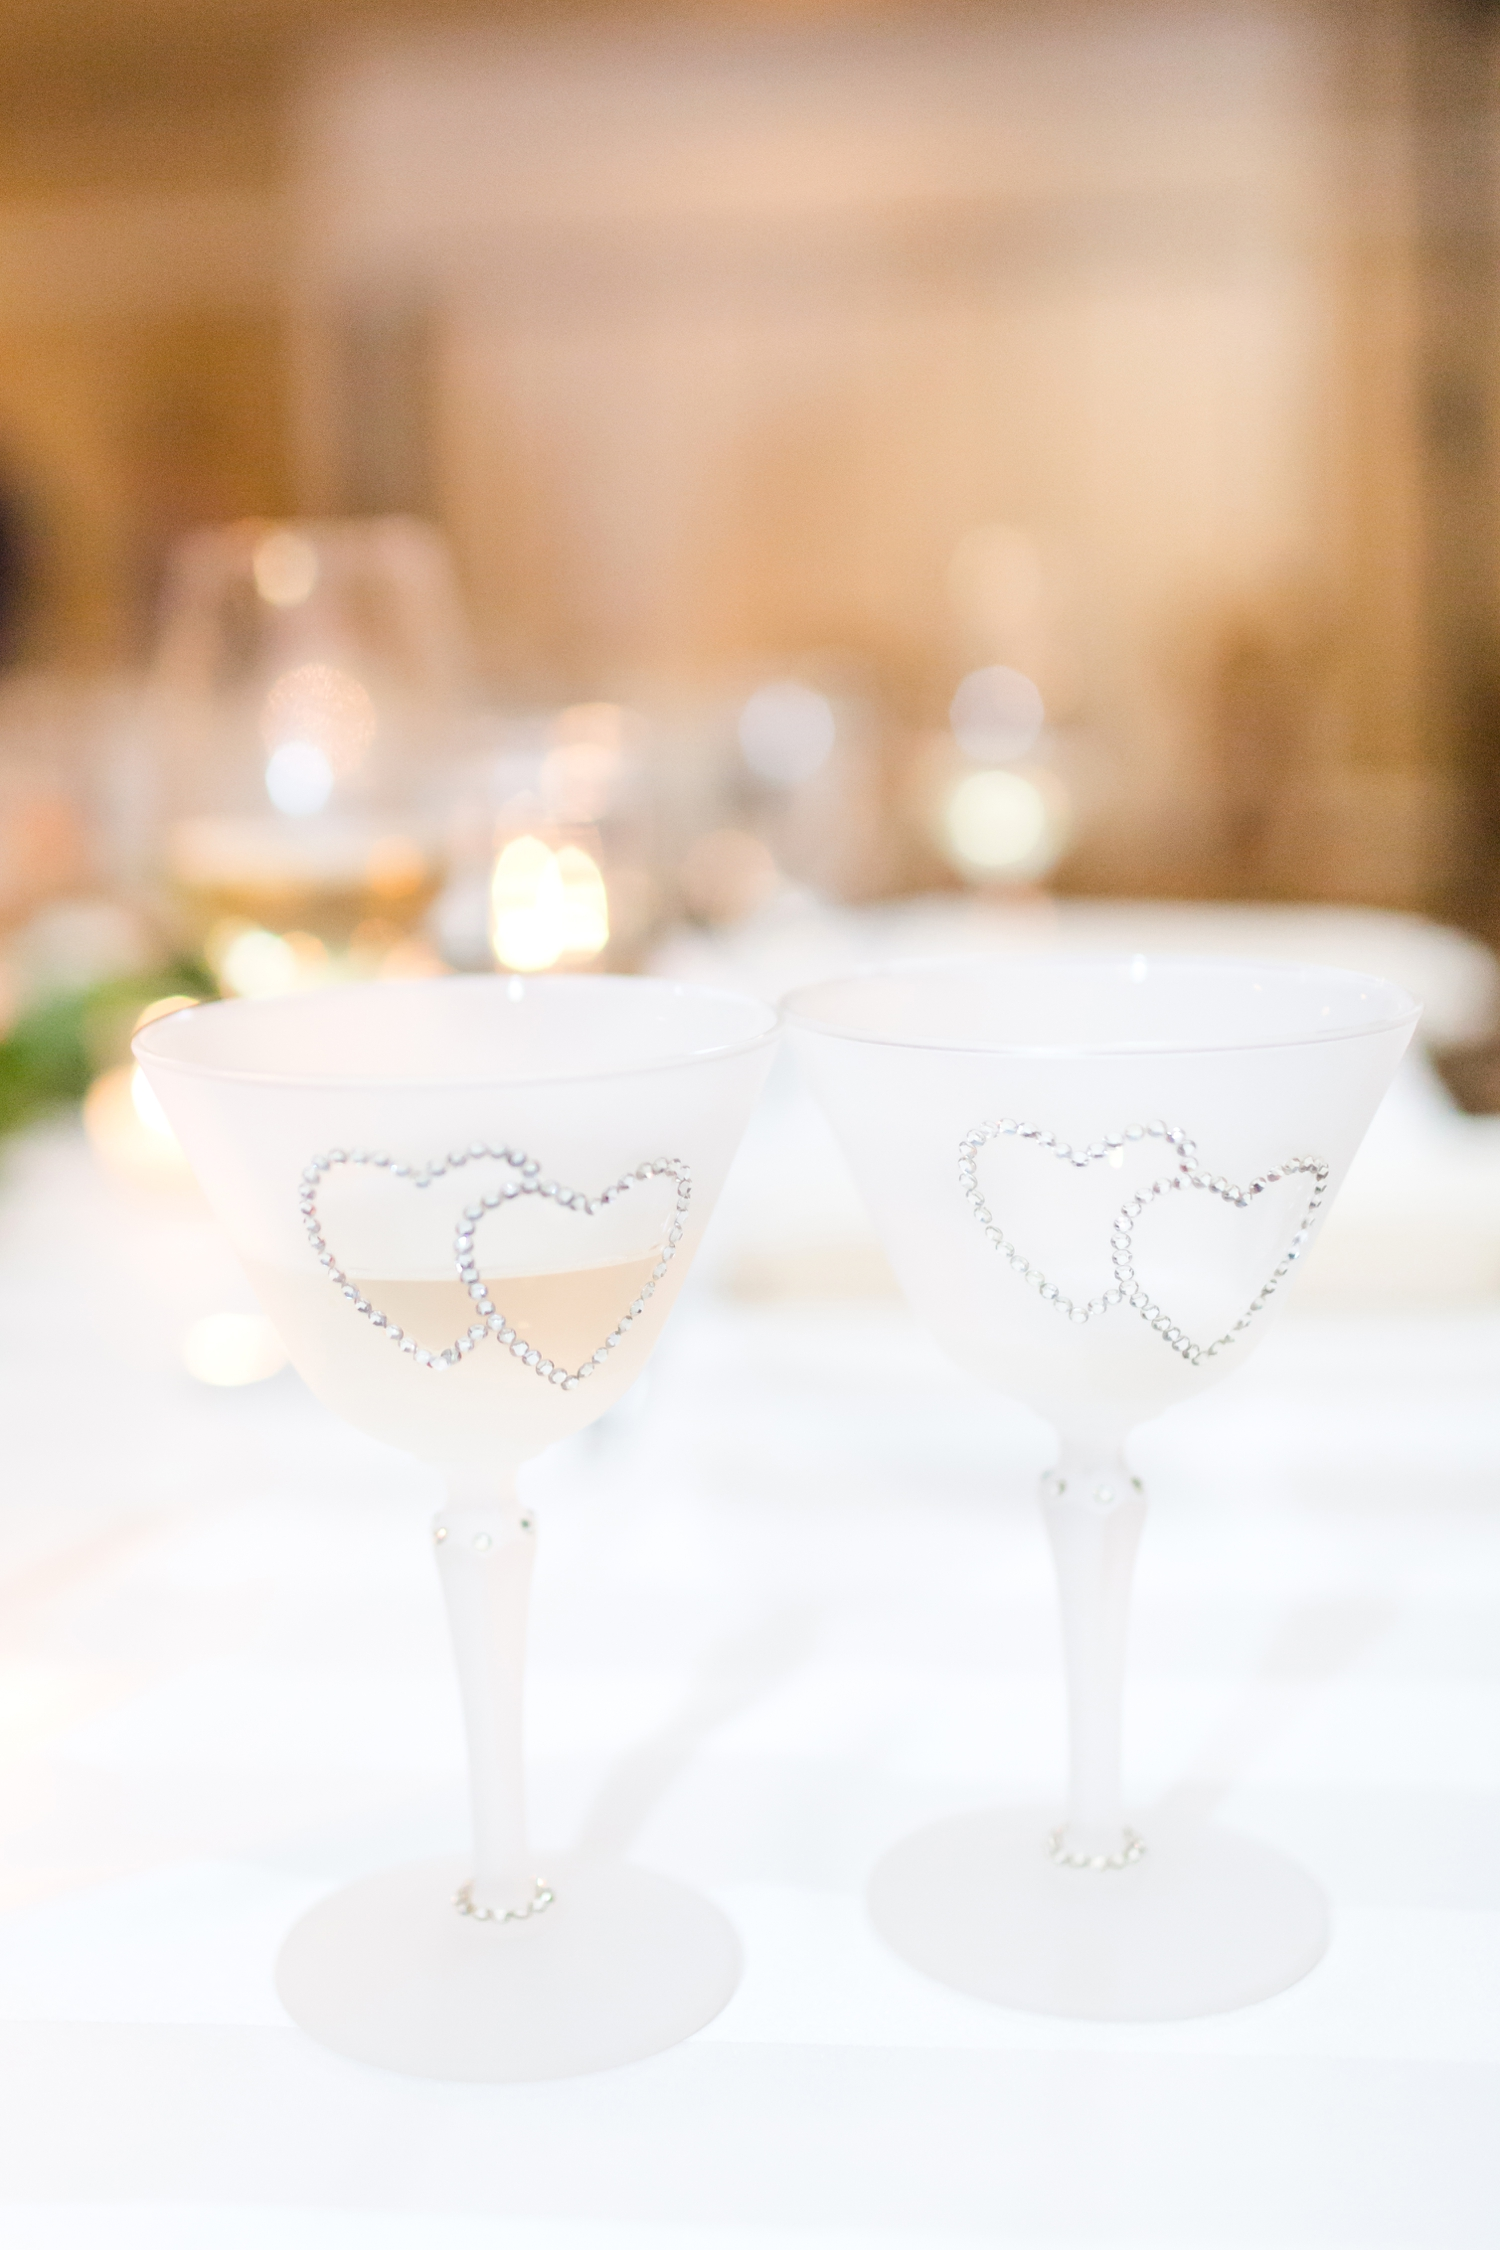 Special champagne glasses that have been at other family members weddings. So sweet!